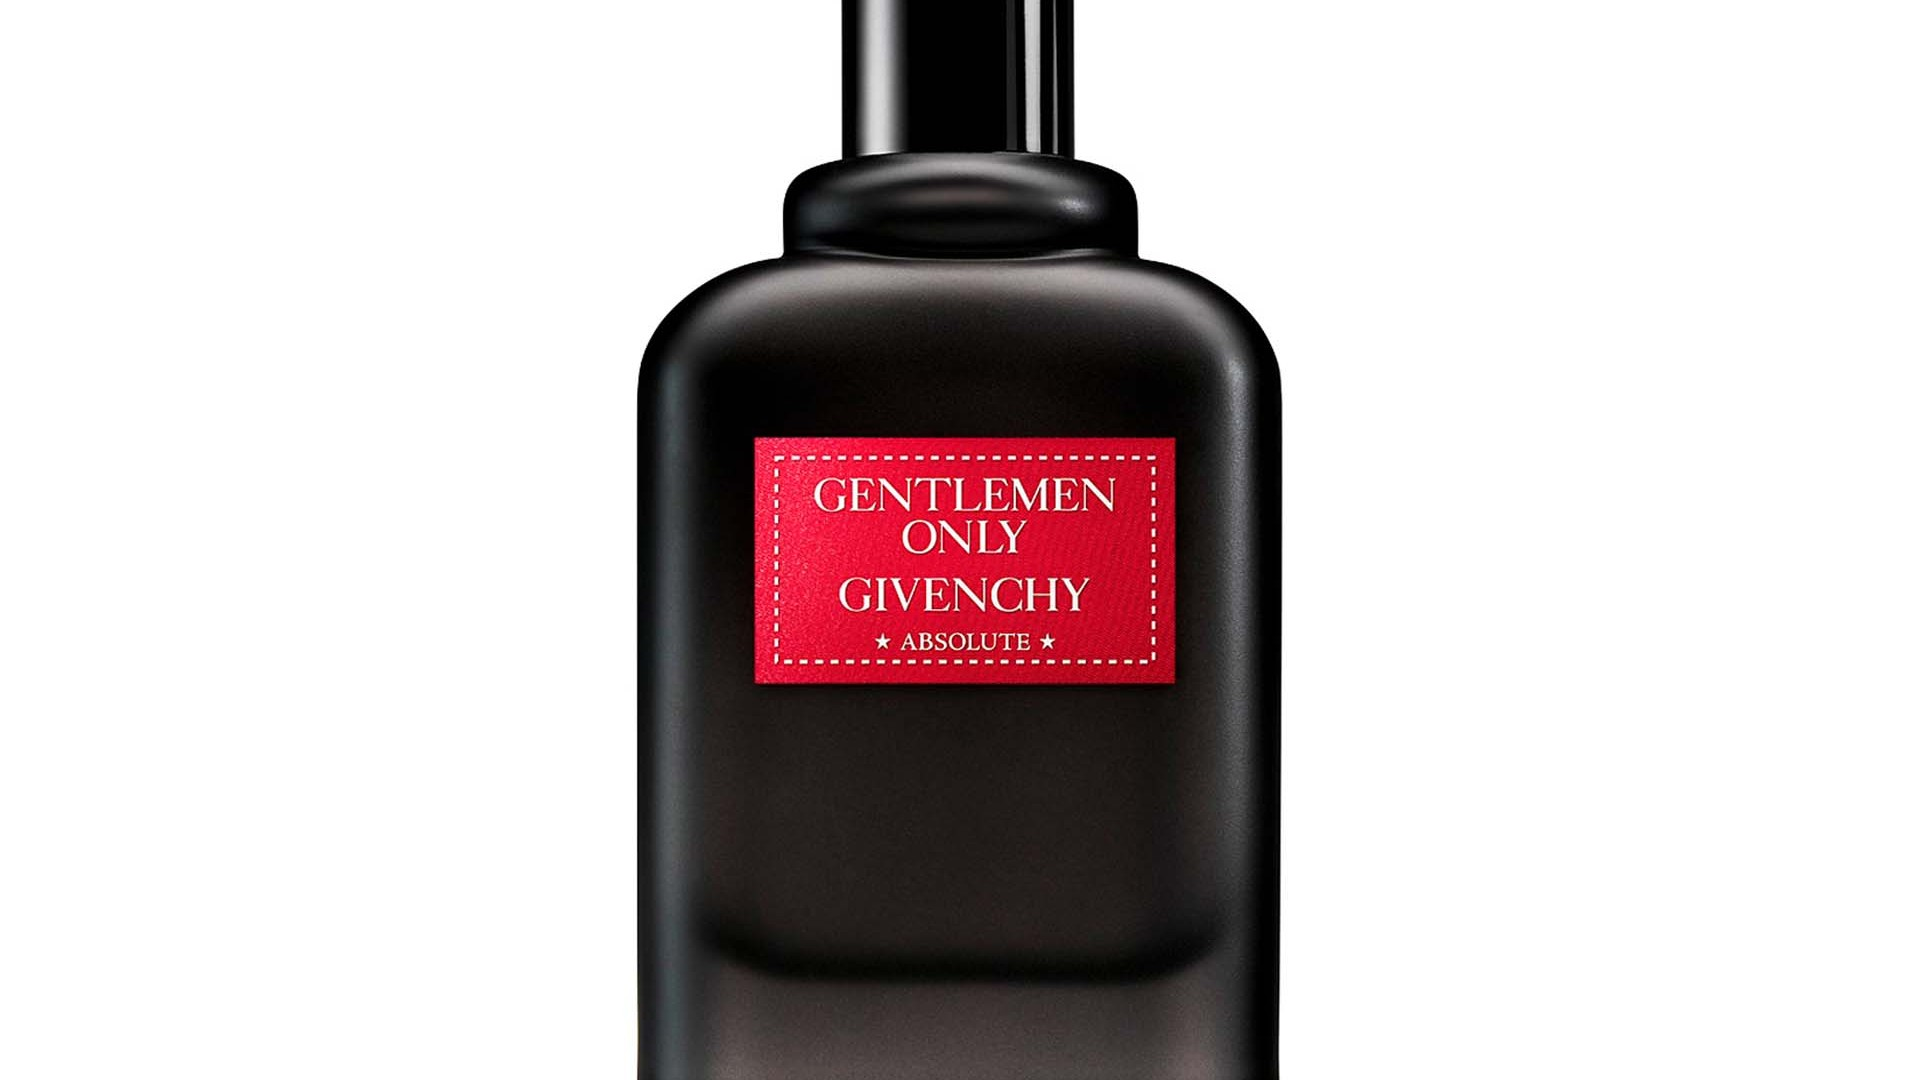 Givenchy Gentleman Only mens fragrance